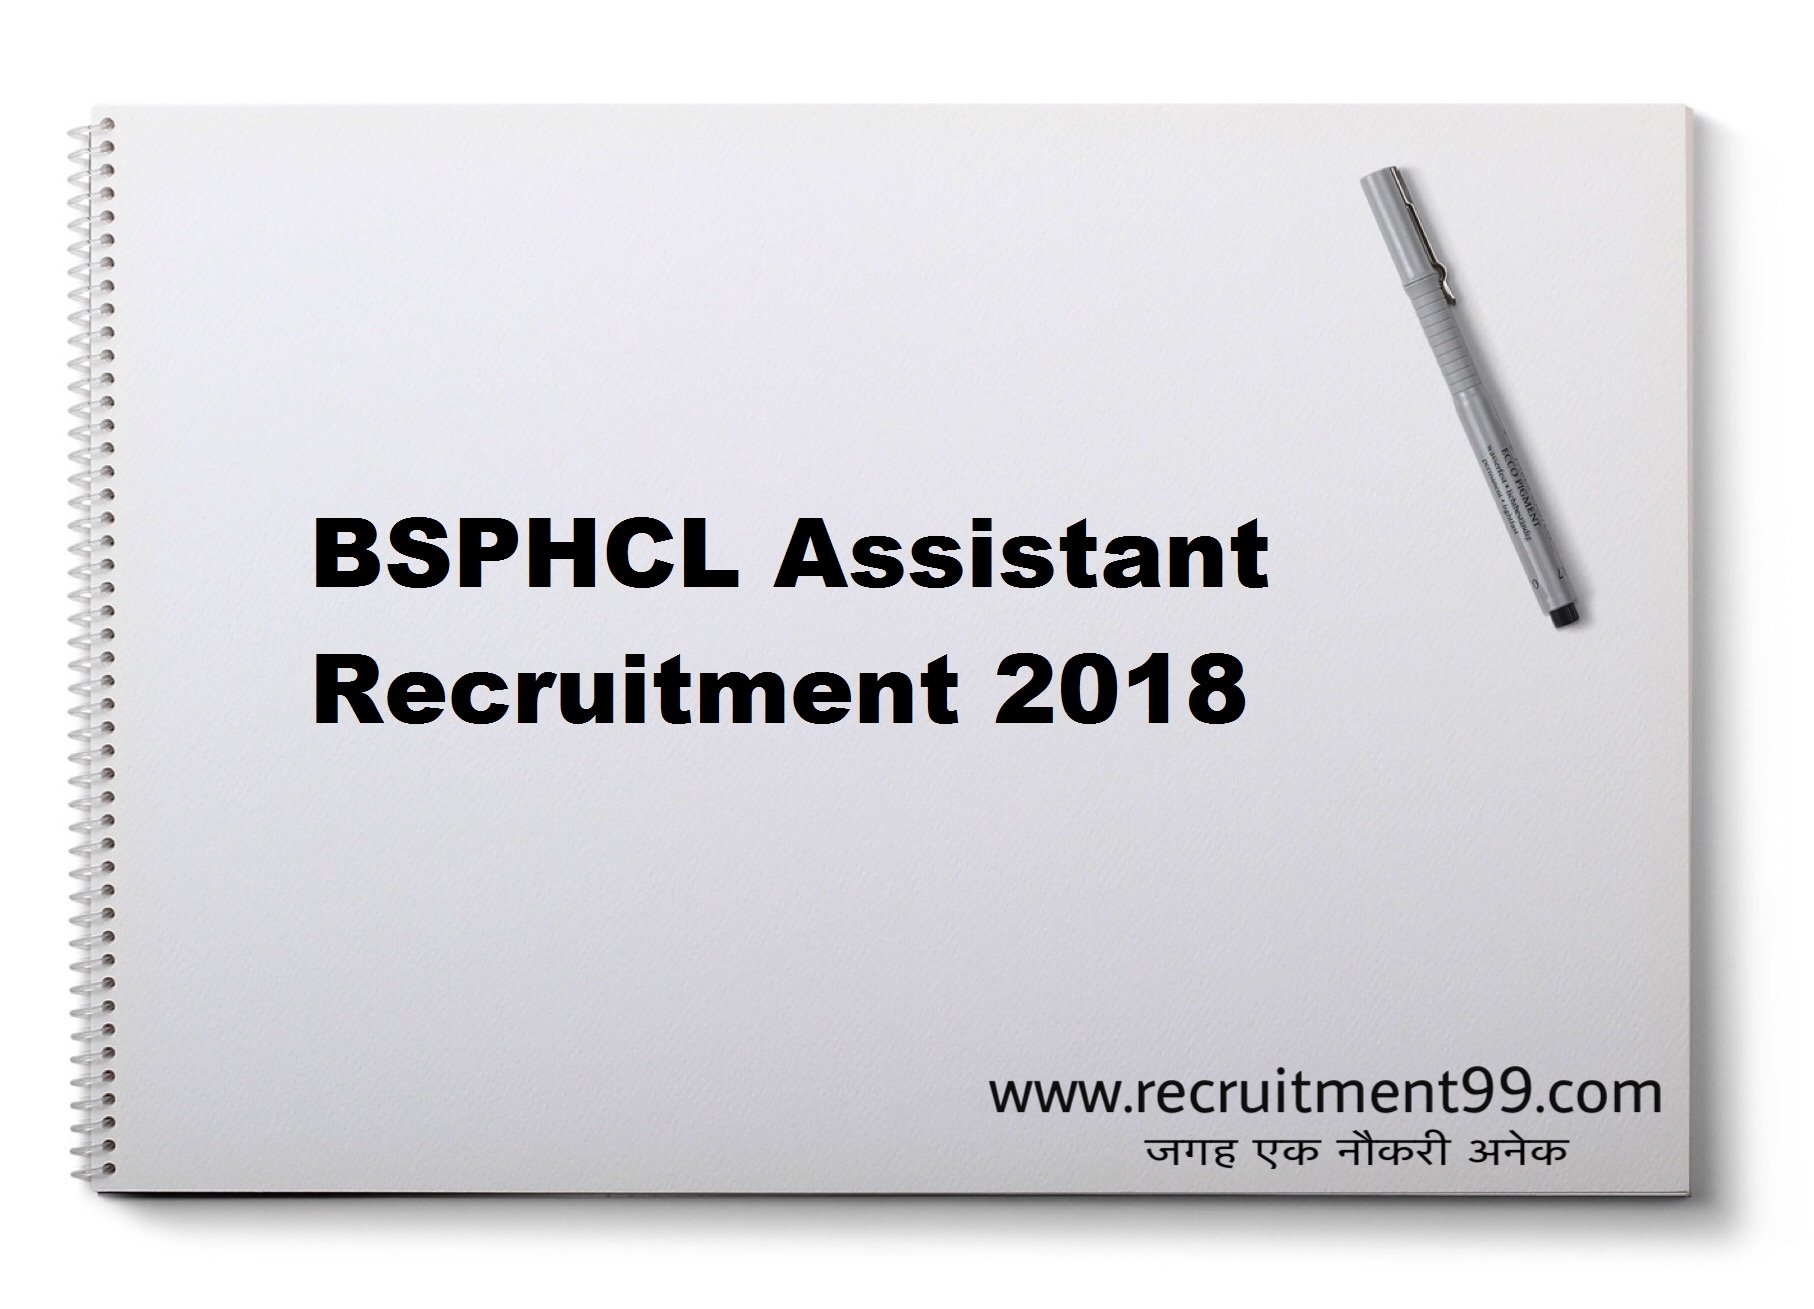 BSPHCL Assistant Recruitment Admit Card Result 2018